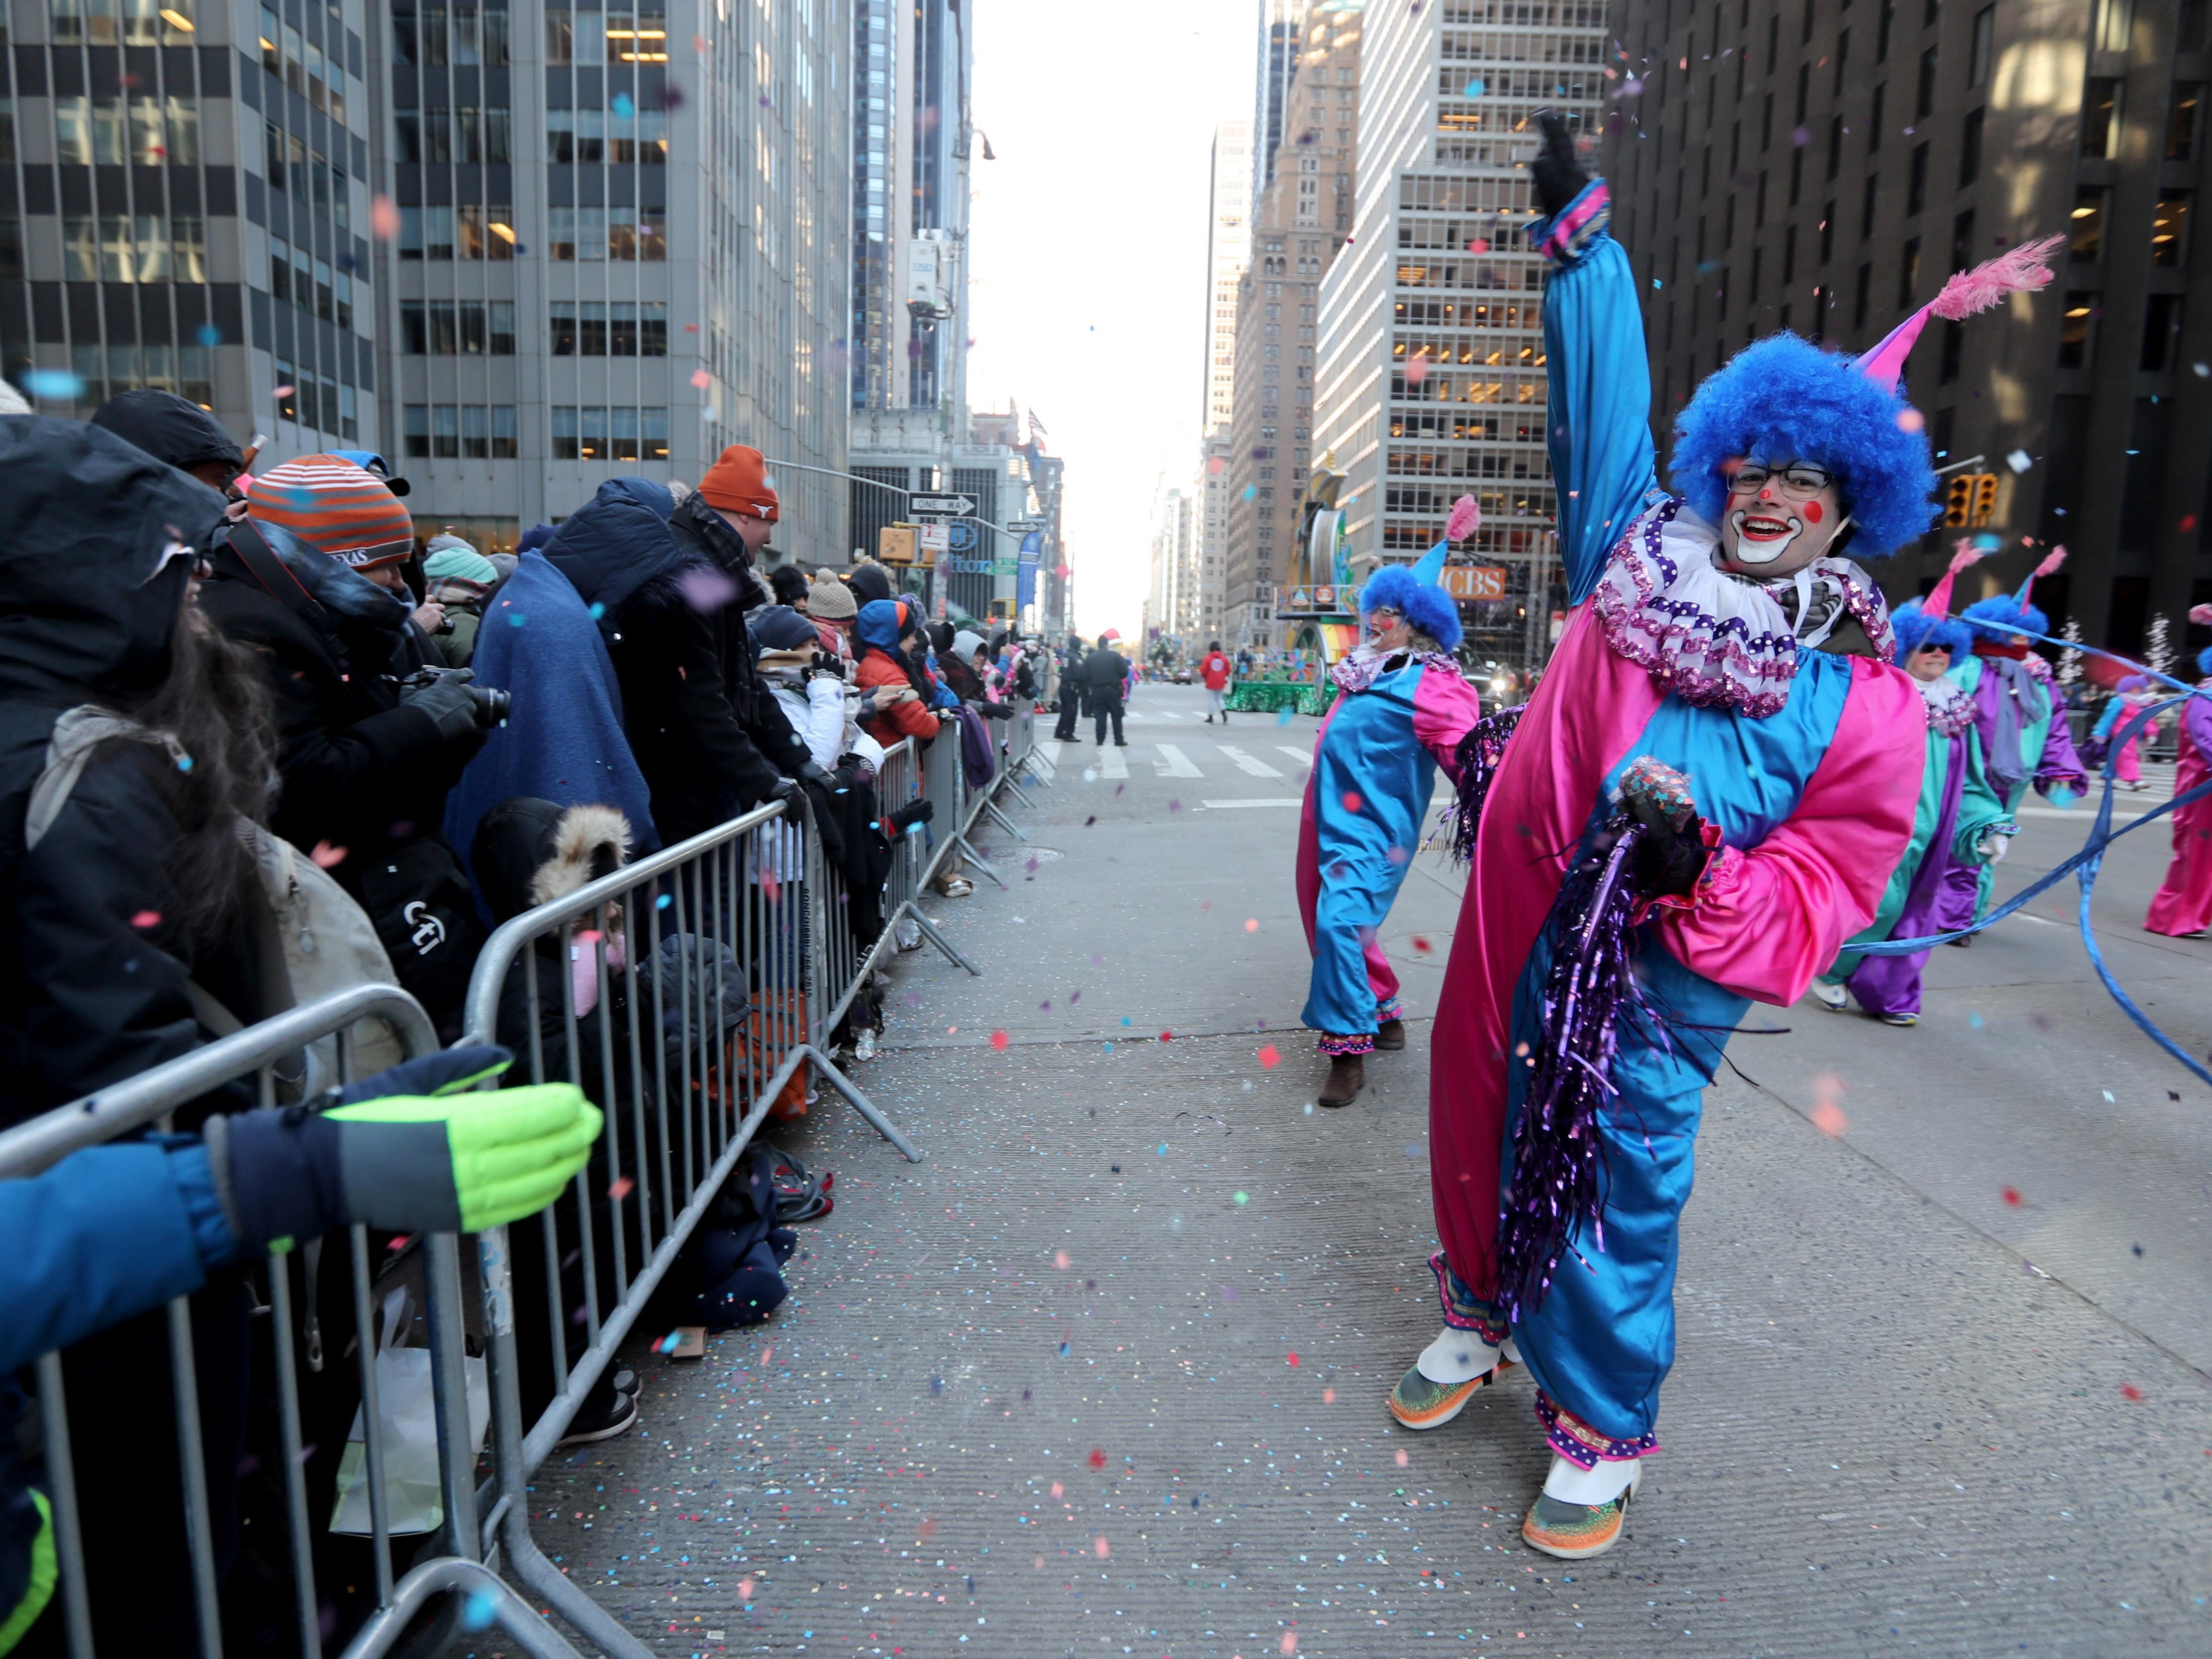 Clowns entertain spectators along 6th Ave. in New York during the annual Macy's Thanksgiving Day Parade, Nov. 22, 2018.